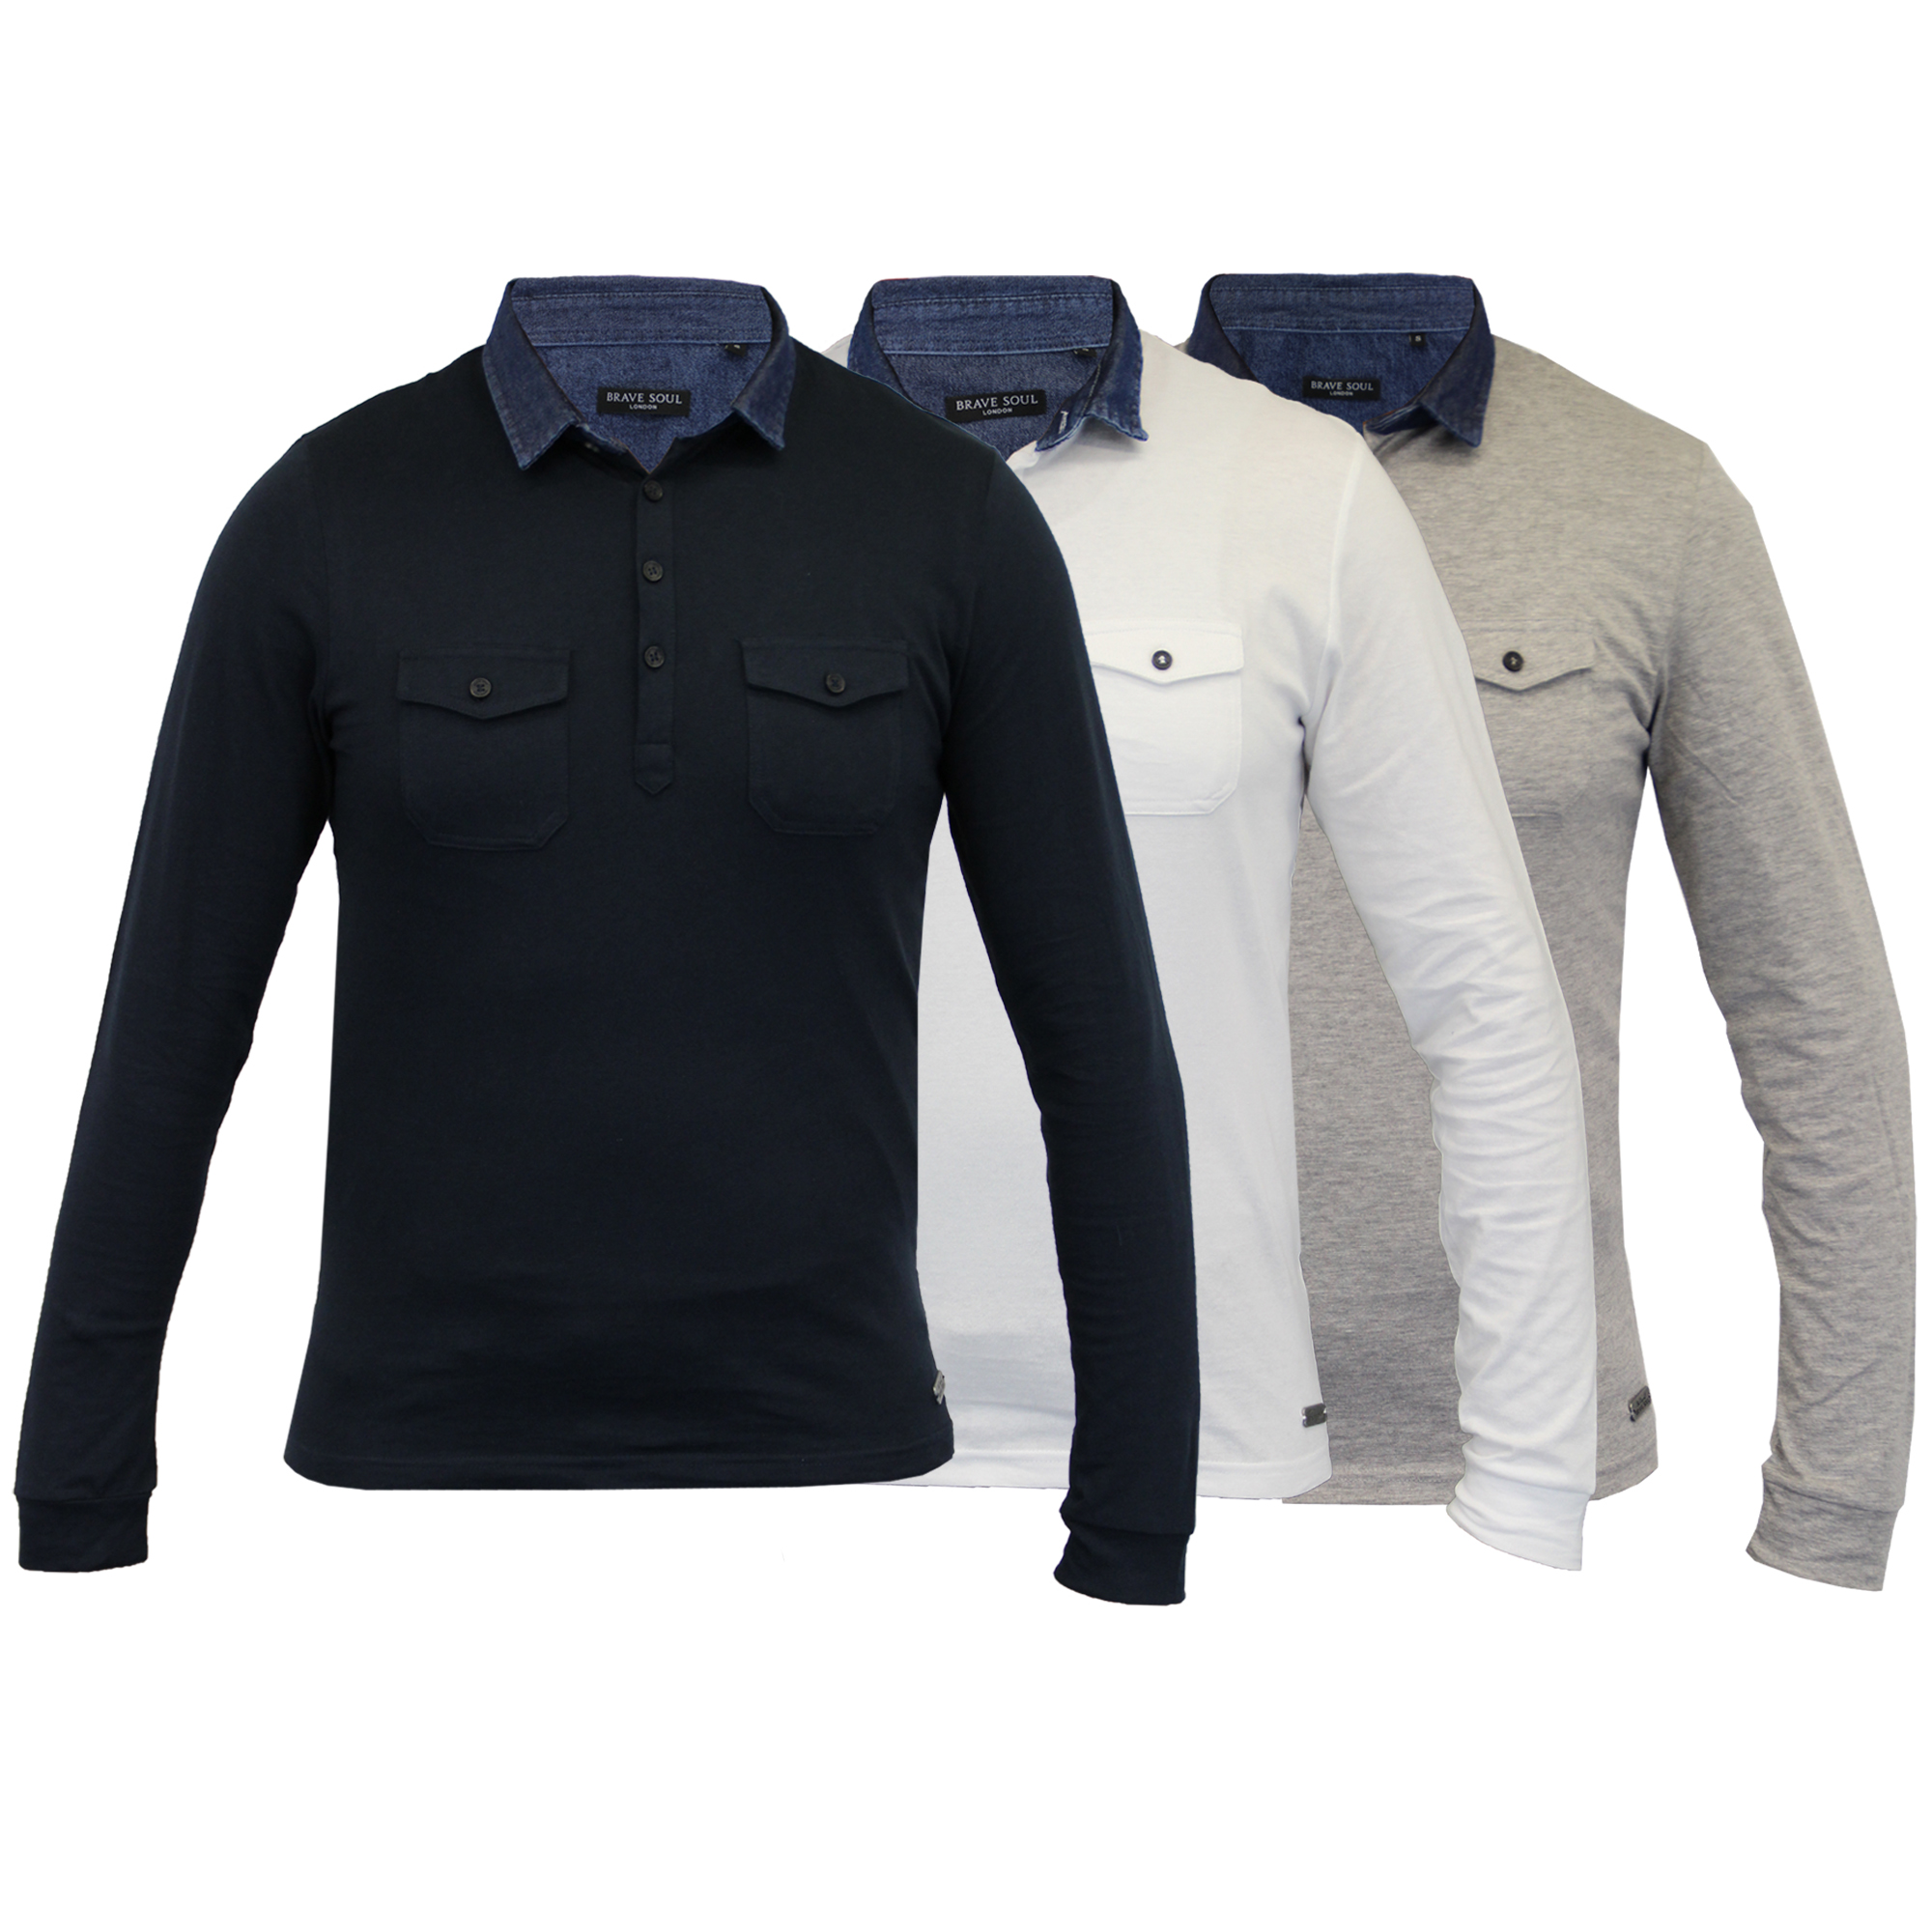 Details About Mens Long Sleeved Jersey Top Brave Soul Polo T Shirt Plain Collared Neck Cotton